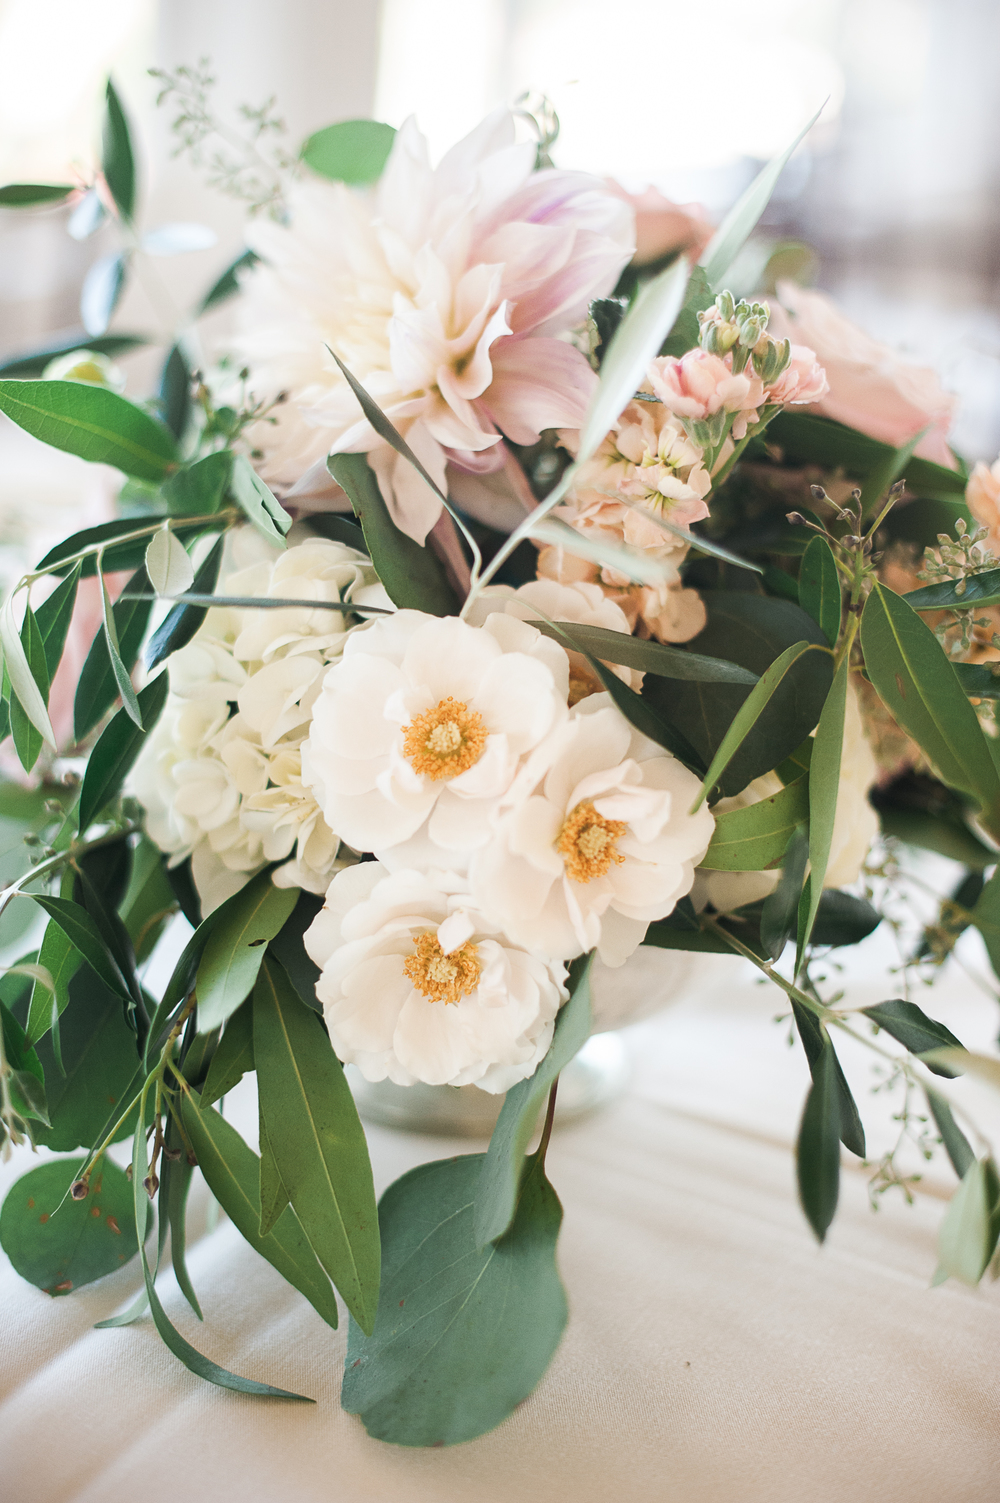 Blush & ivory, garden romantic wedding by San Diego wedding florist, Compass Floral.   Brandi Welles Photography.